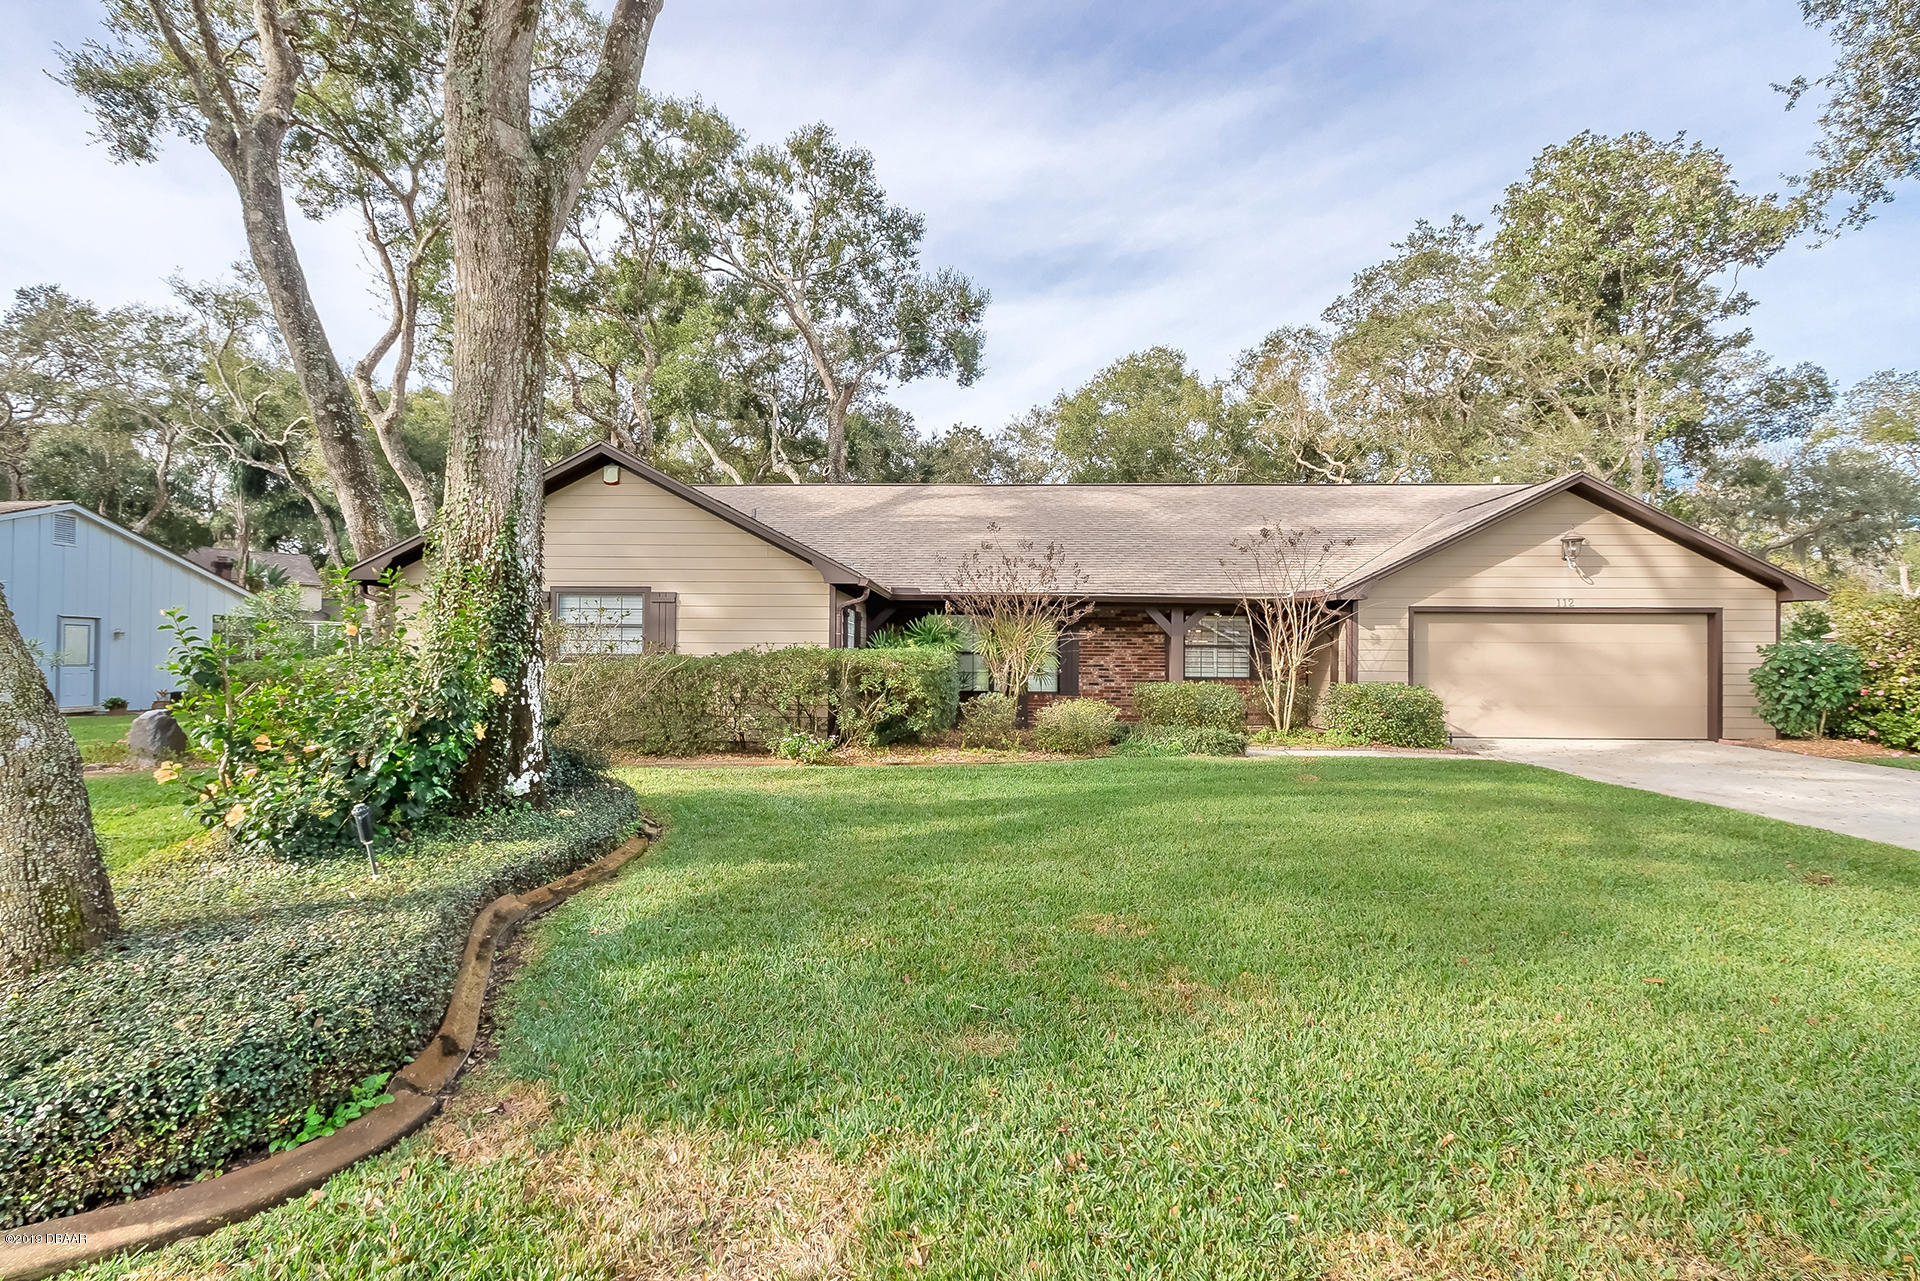 Photo of 112 Rio Pinar Drive, Ormond Beach, FL 32174